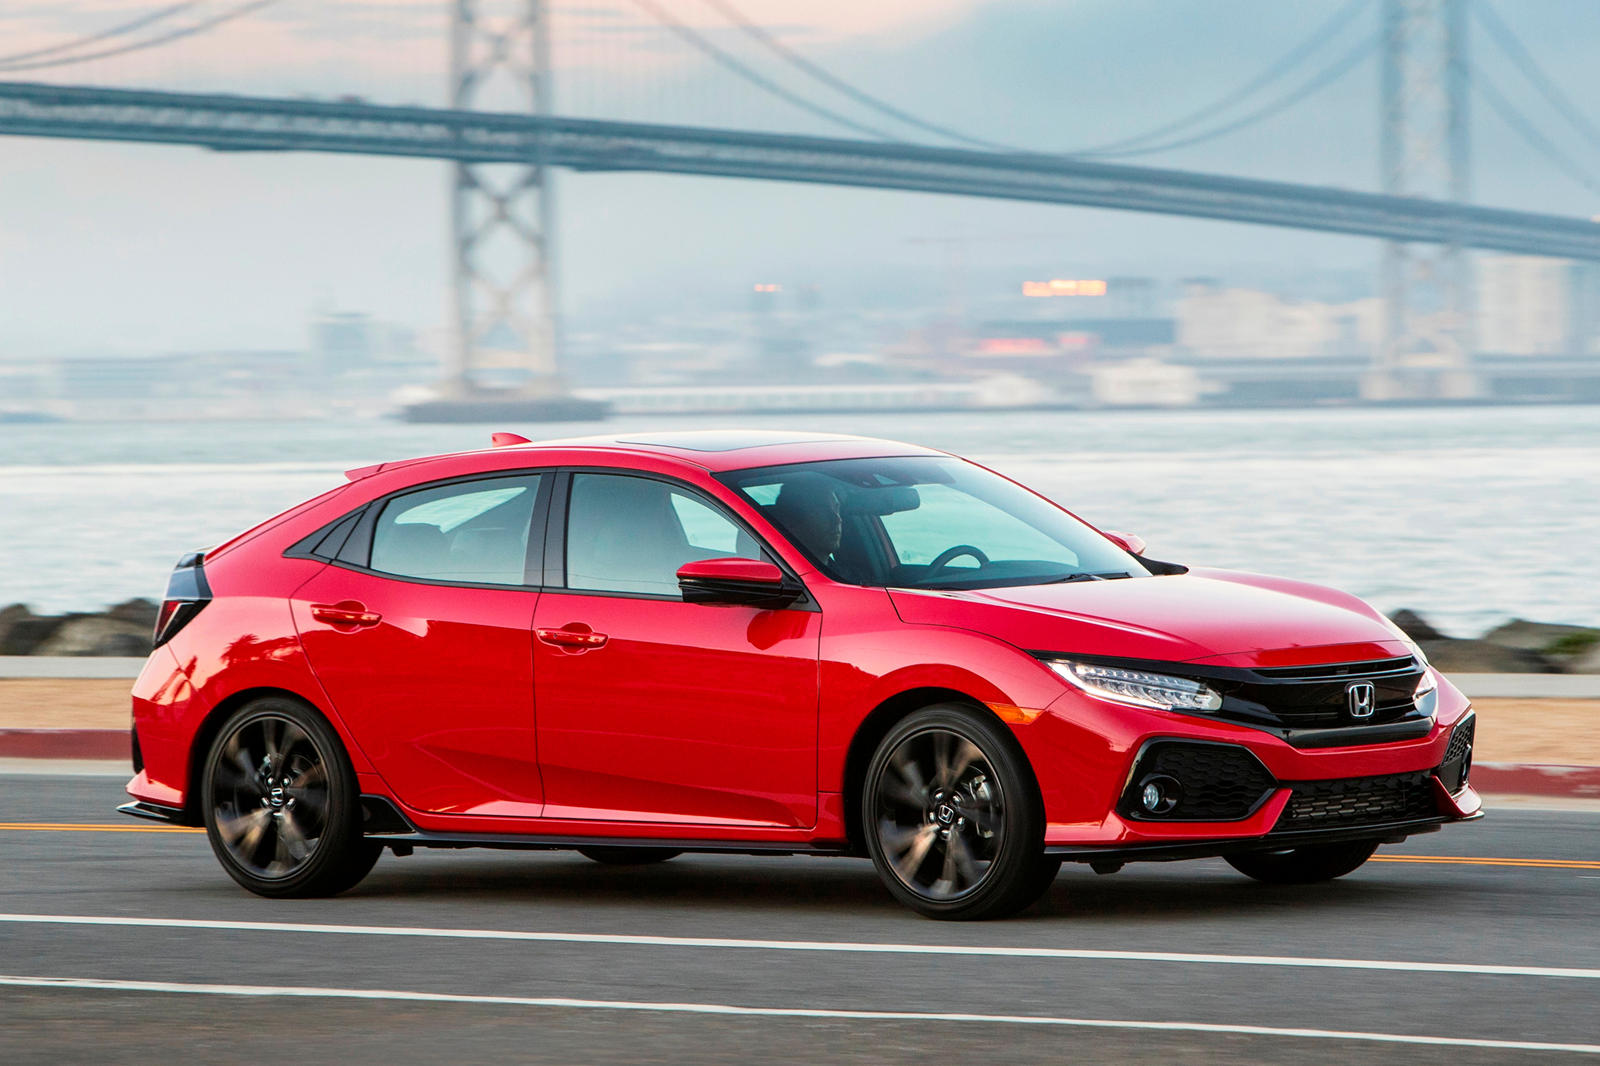 2020 Honda Civic Hatchback Exterior side view